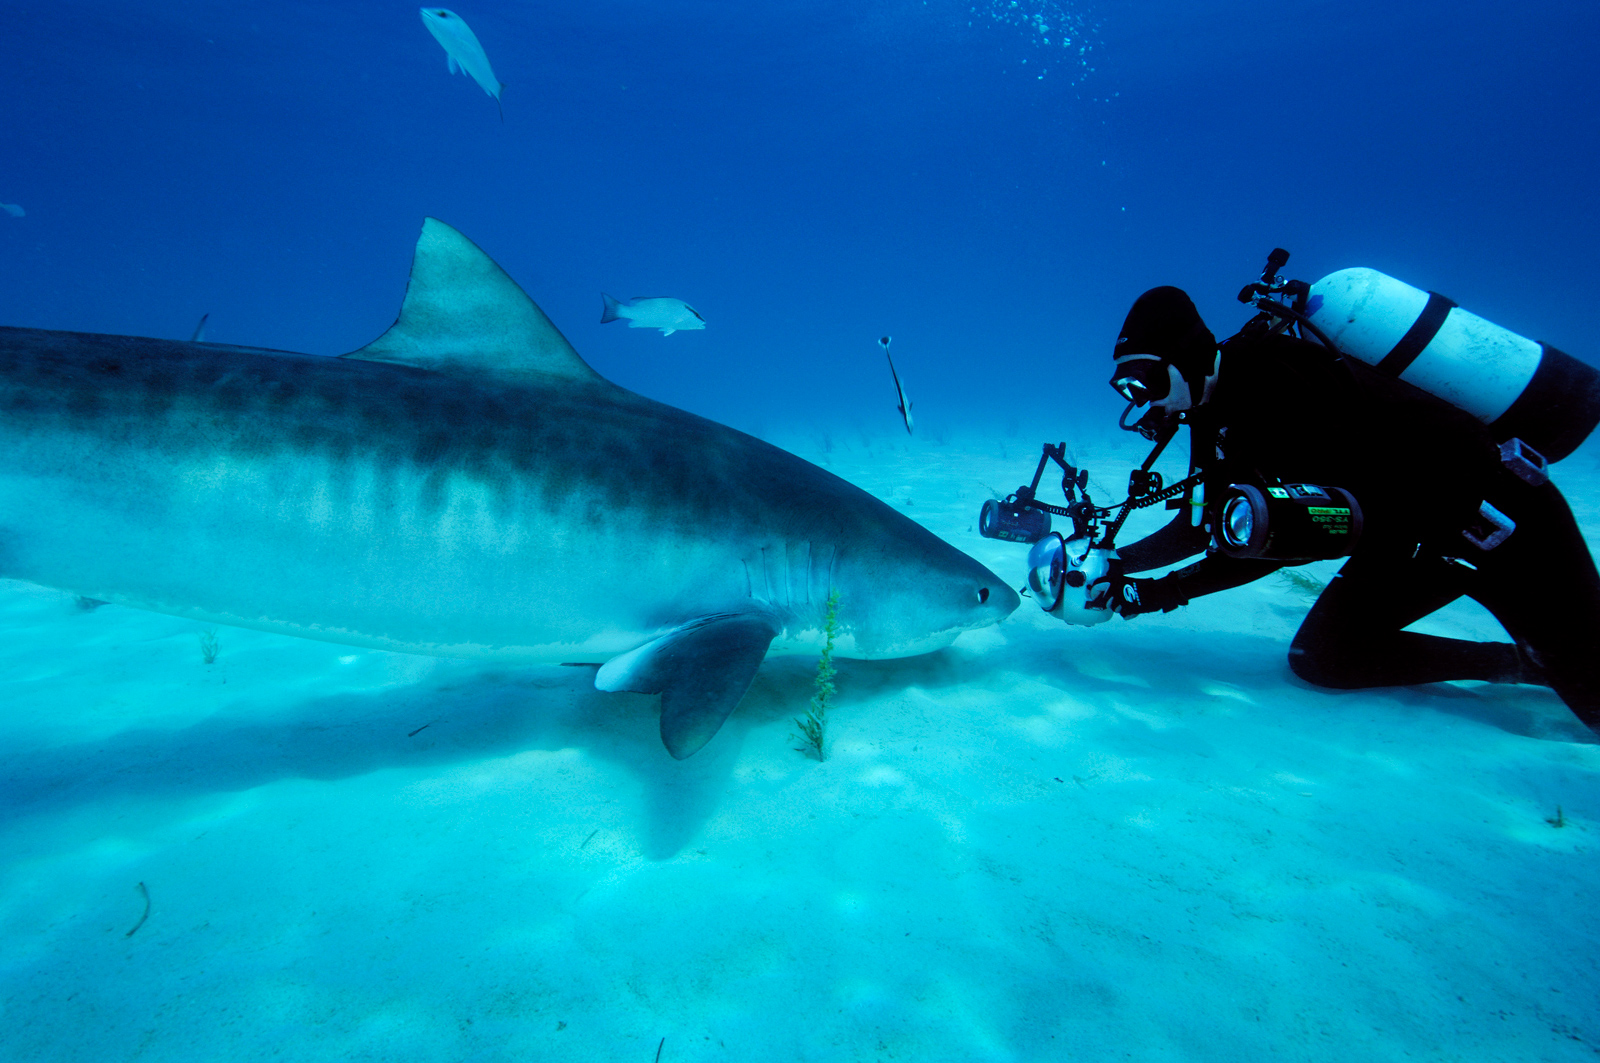 Brian Skerry takes an up close photo of a tiger shark on the seafloor. <div class='credit'><strong>Credit:</strong> Brian Skerry takes an up close photo of a tiger shark on the seafloor. </div>